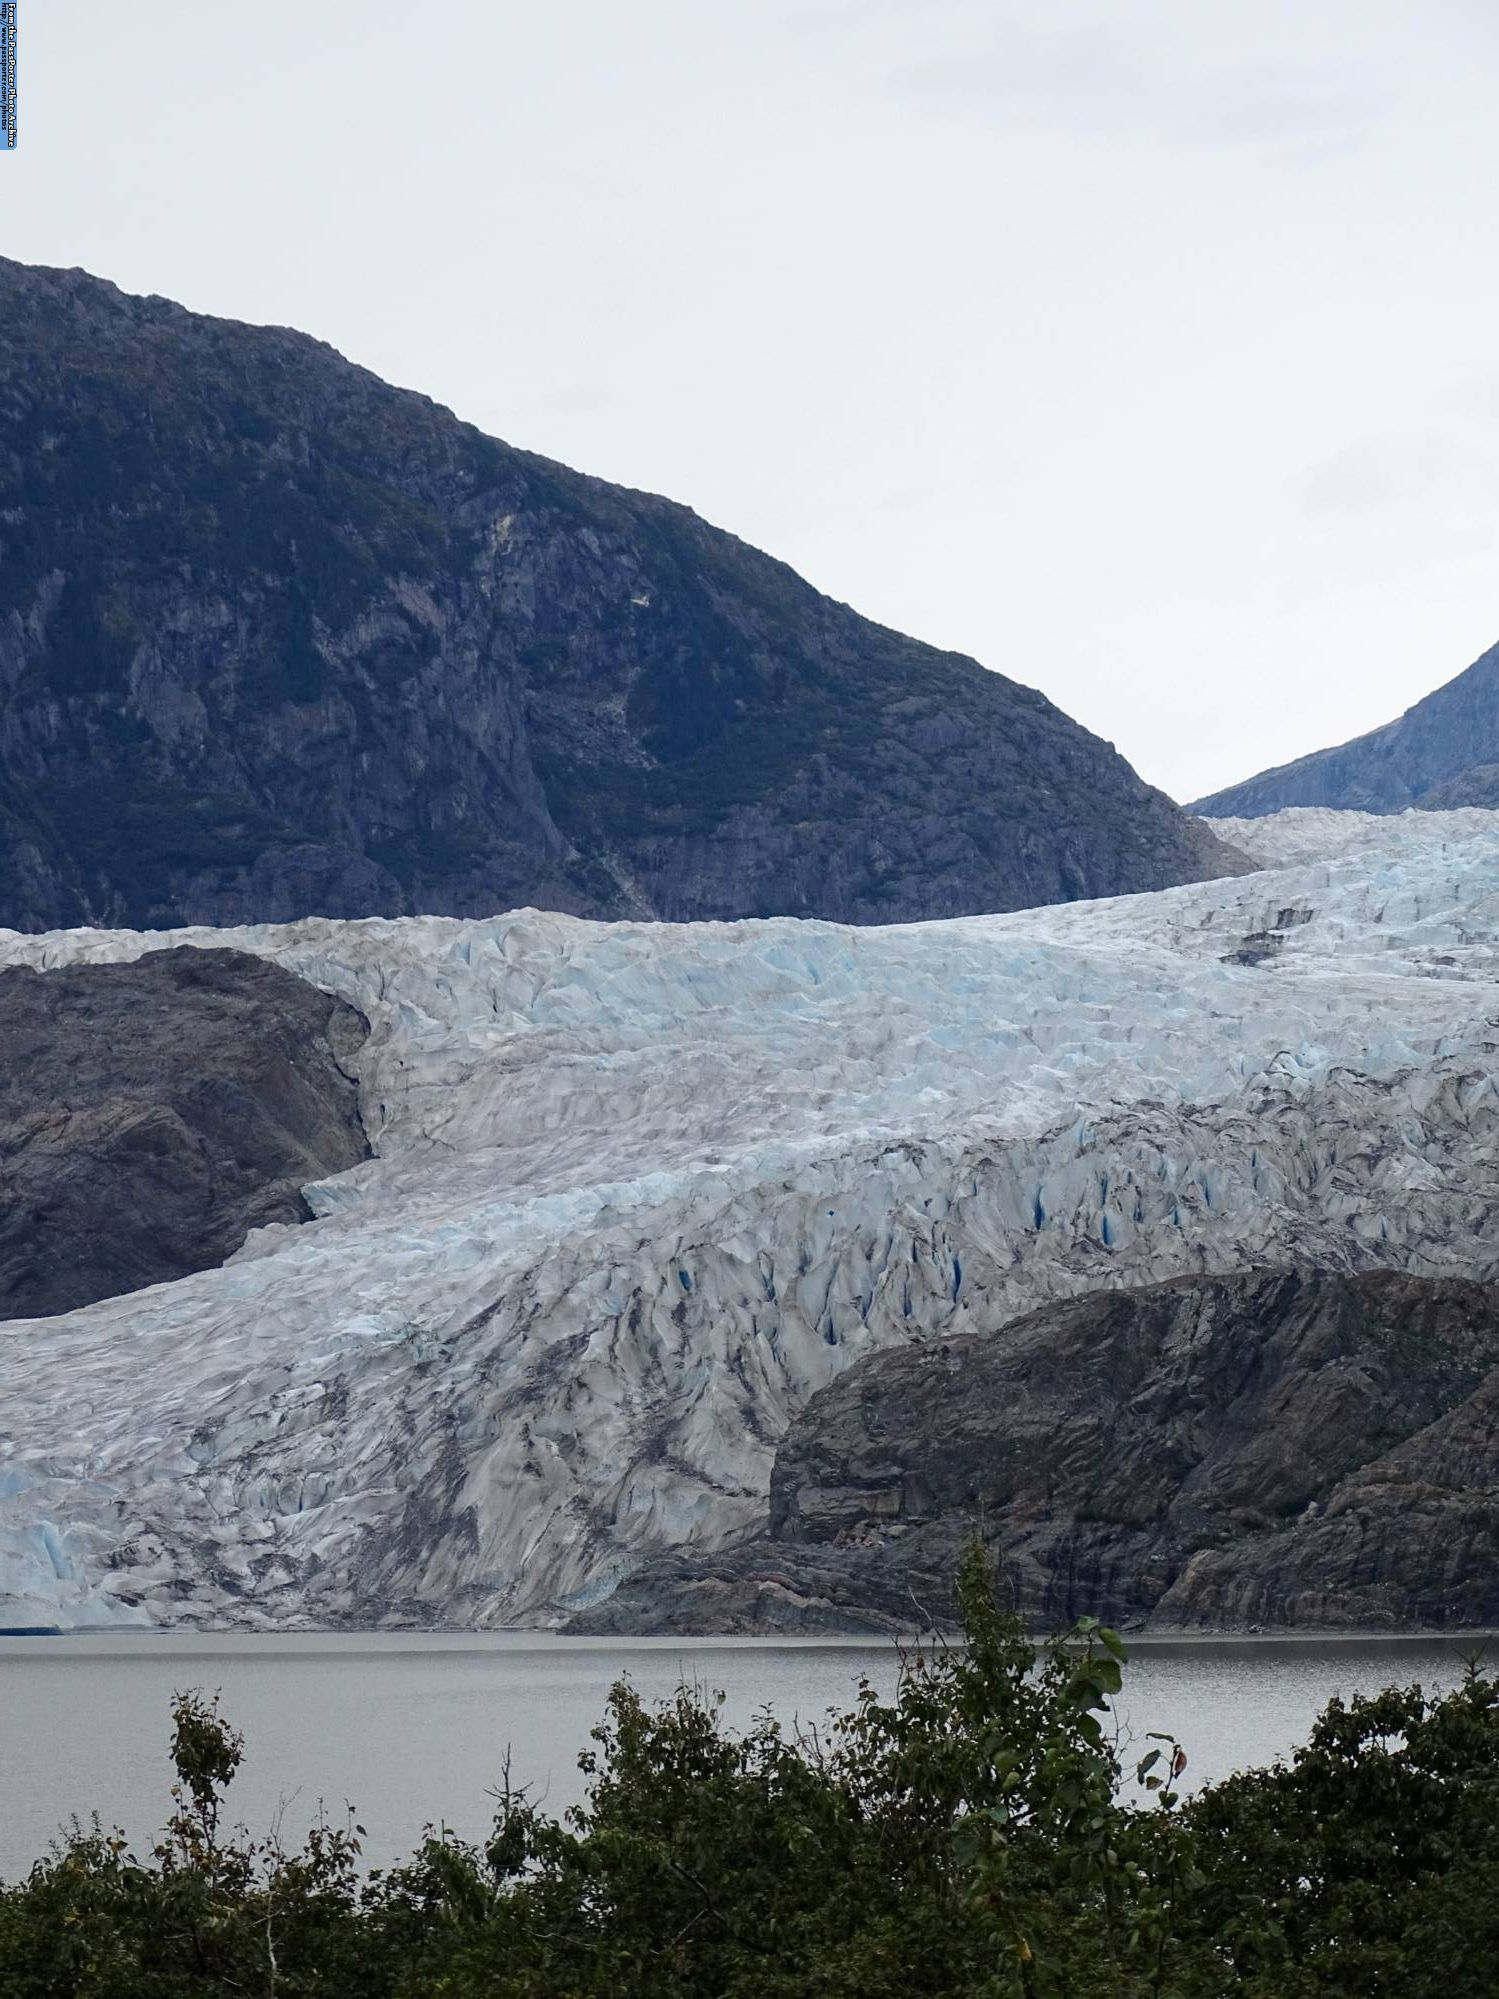 Enjoy the Whales and Glaciers Photo Safari in Juneau while on your Disney Cruise to Alaska |PassPorter.com